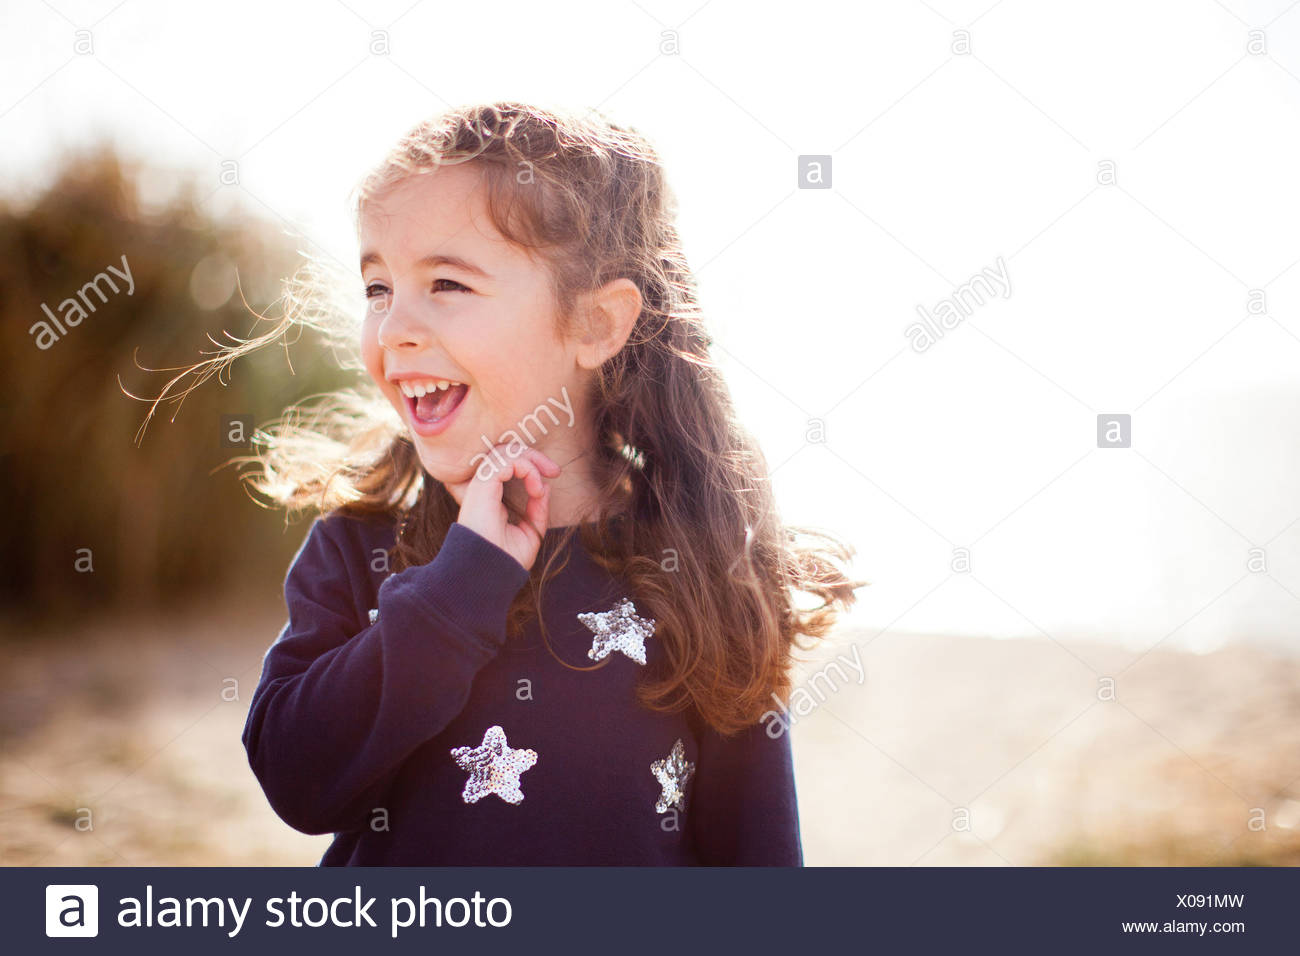 Portrait of girl looking away, laughing - Stock Image